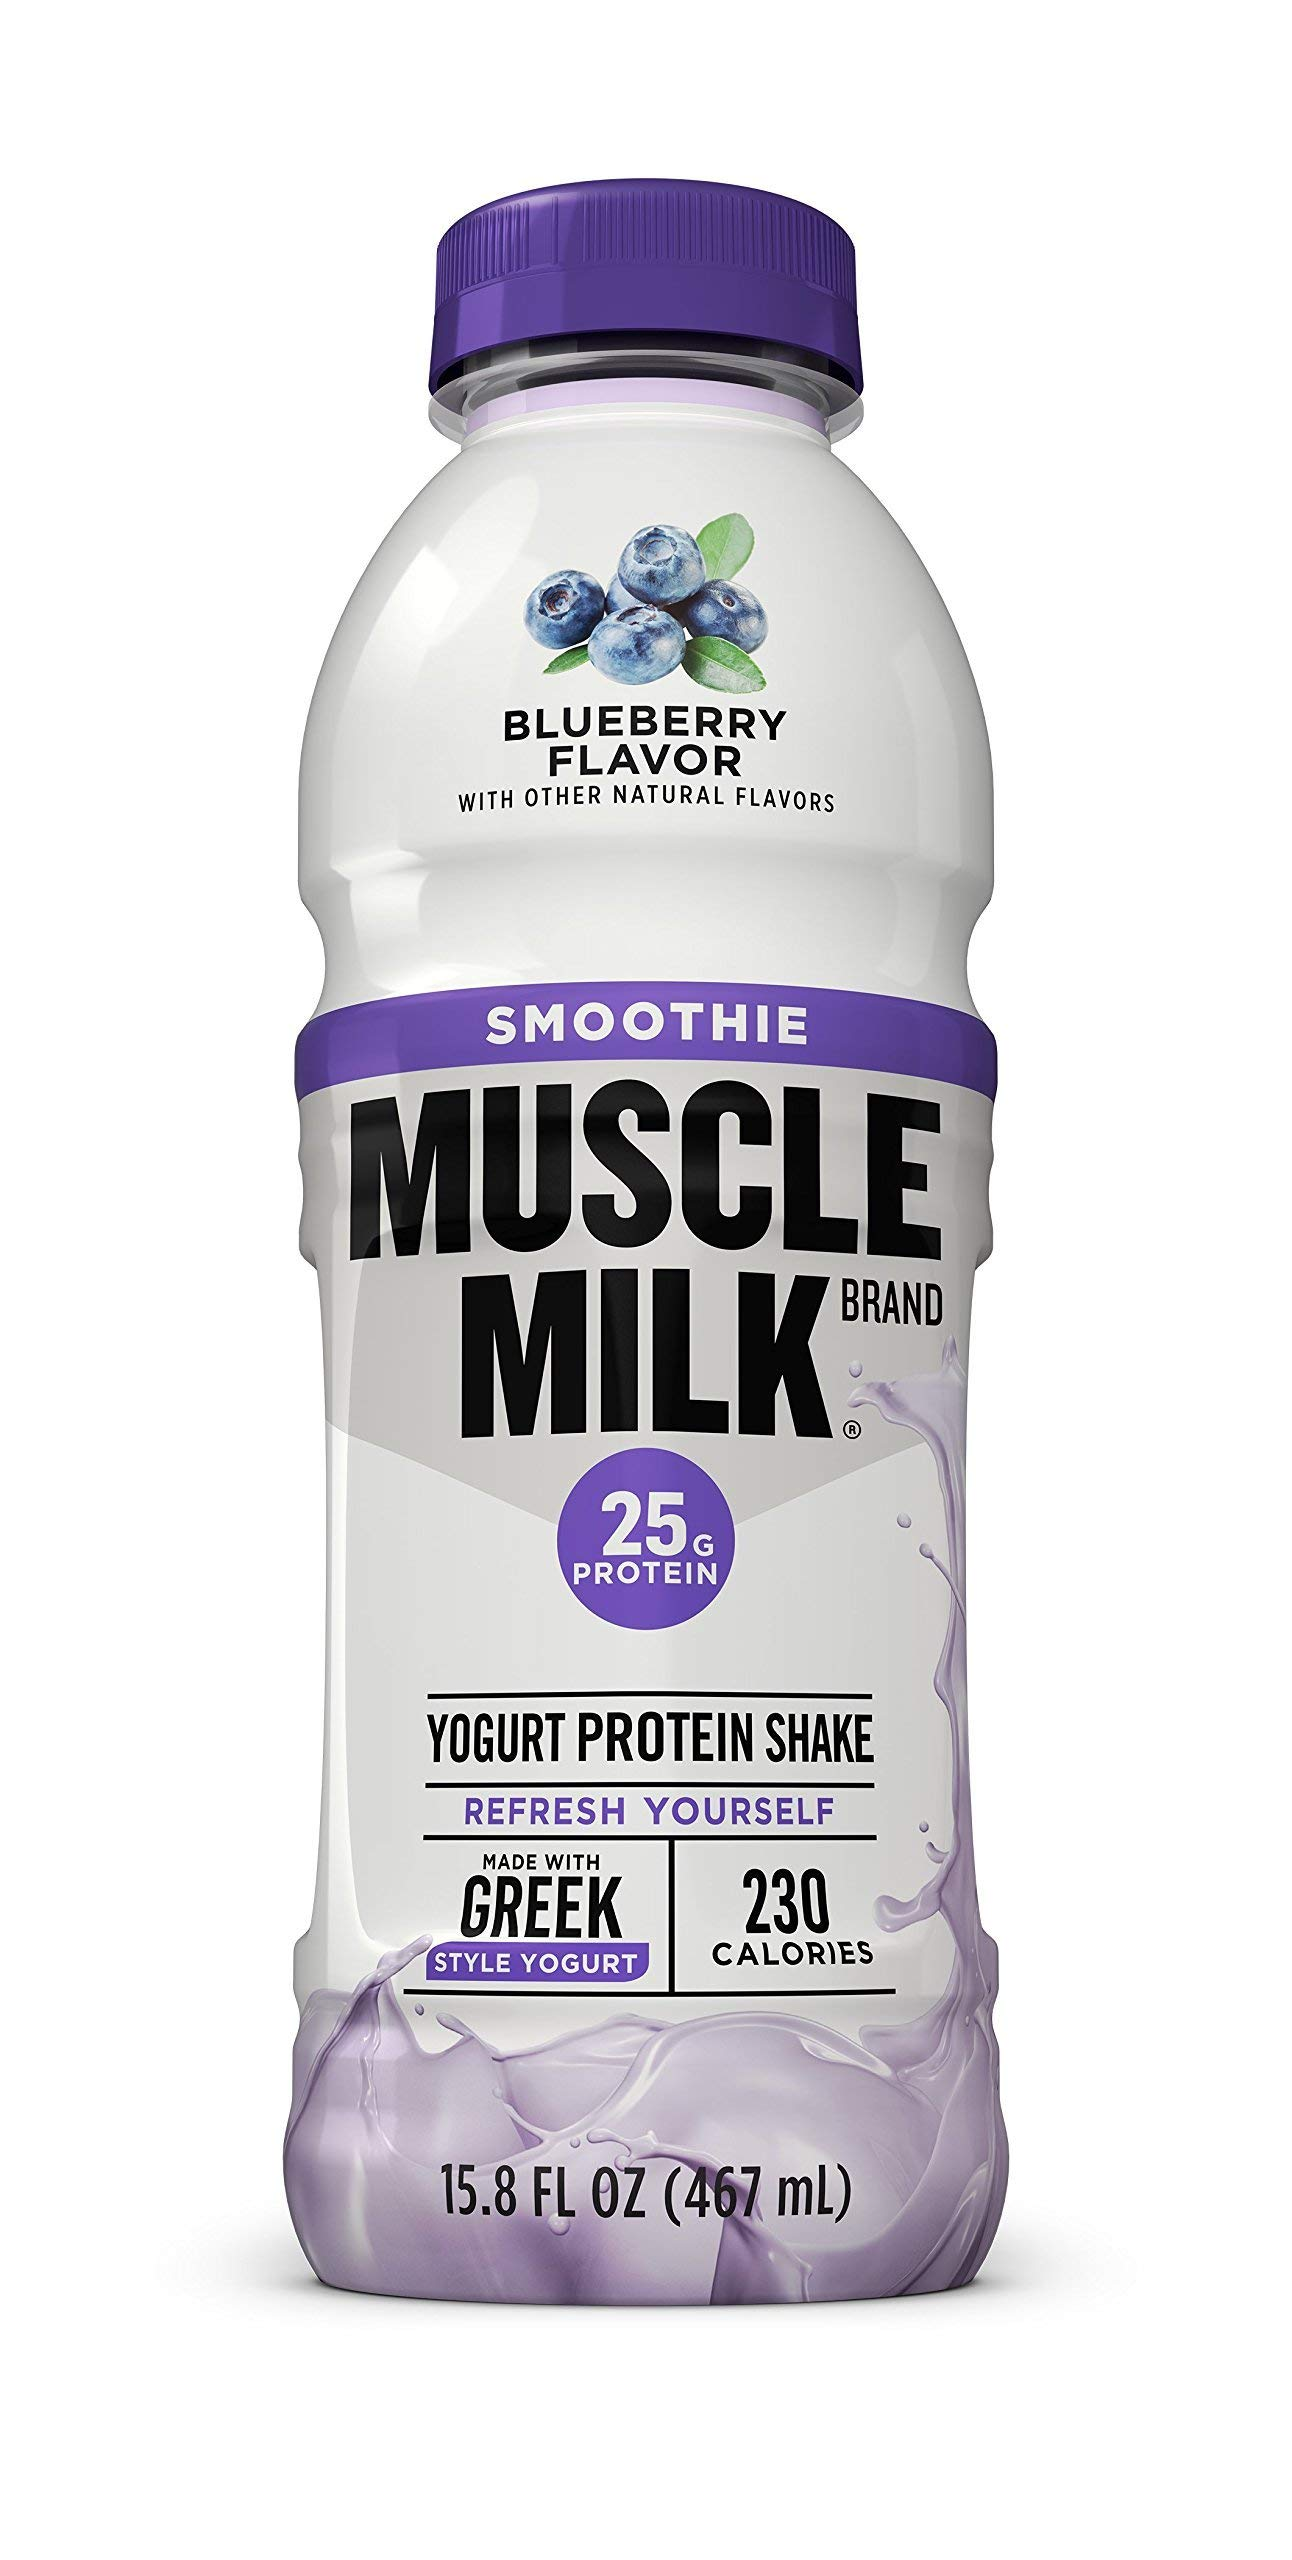 Muscle Milk Smoothie Protein Yogurt Shake, Blueberry, 25g Protein, 15.8 FL OZ, 12 Count by CytoSport